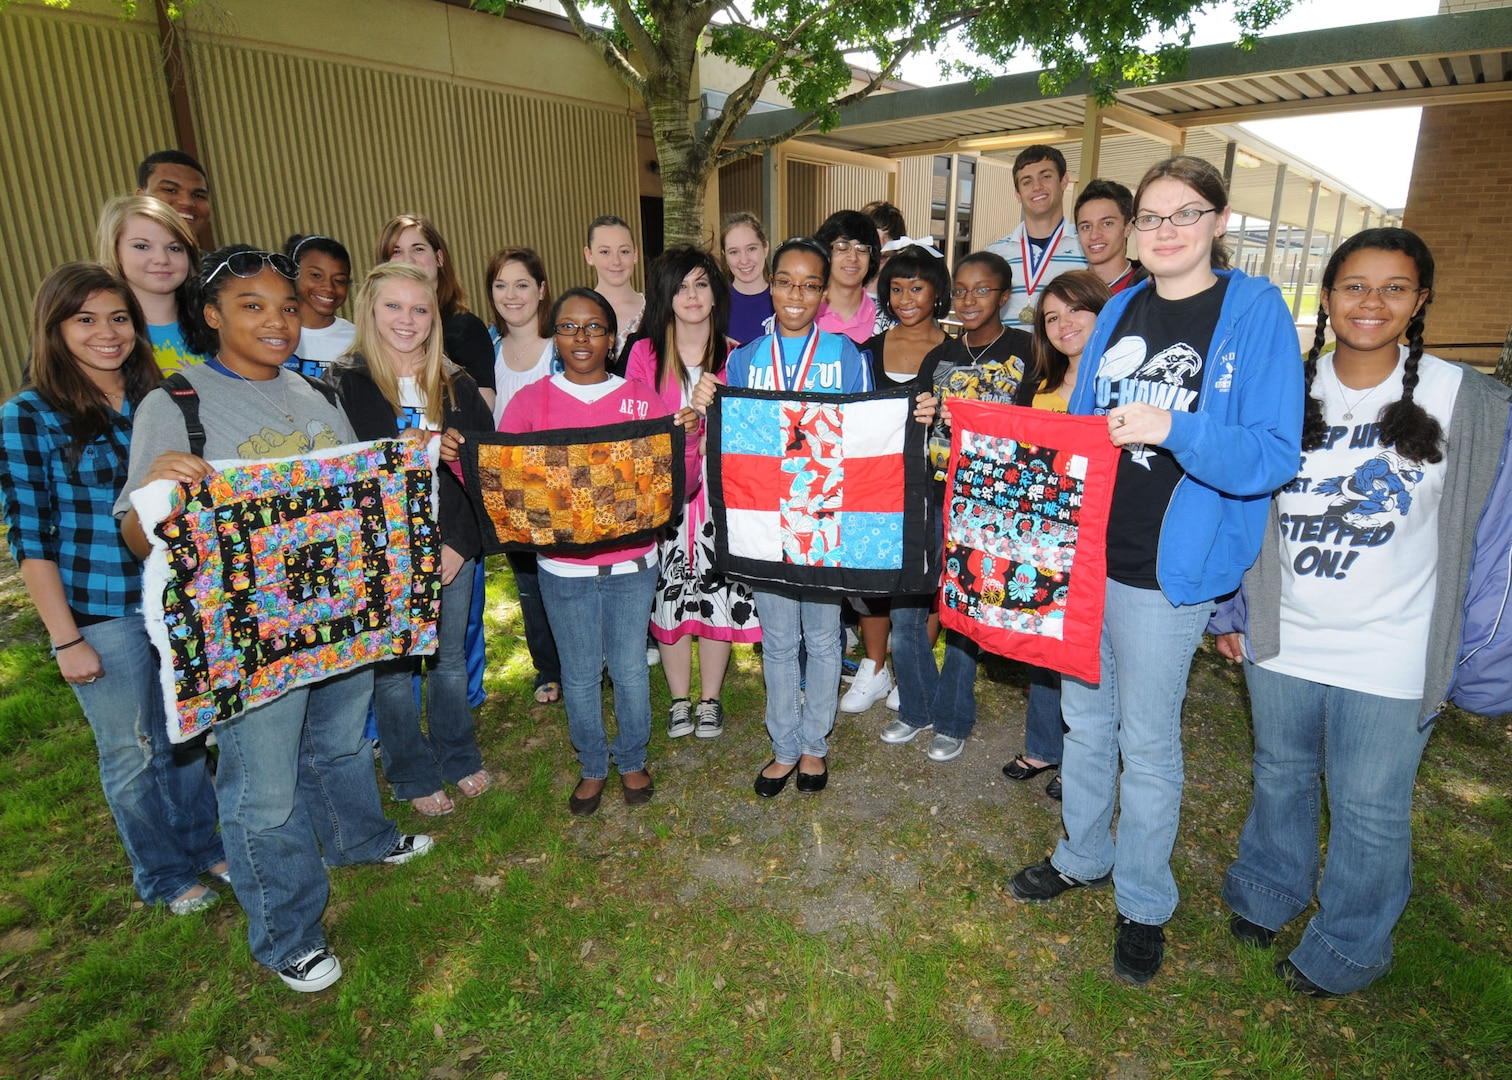 Students at Randolph Air Force Base High School display quilt samples made during a quilting project. THe students made larger quilts to donate to Project Linus for traumatized children. The quilting was done under the direction of RHS teacher Shirley McMenamin. (U.S. Air Force photo by Dave Terry)